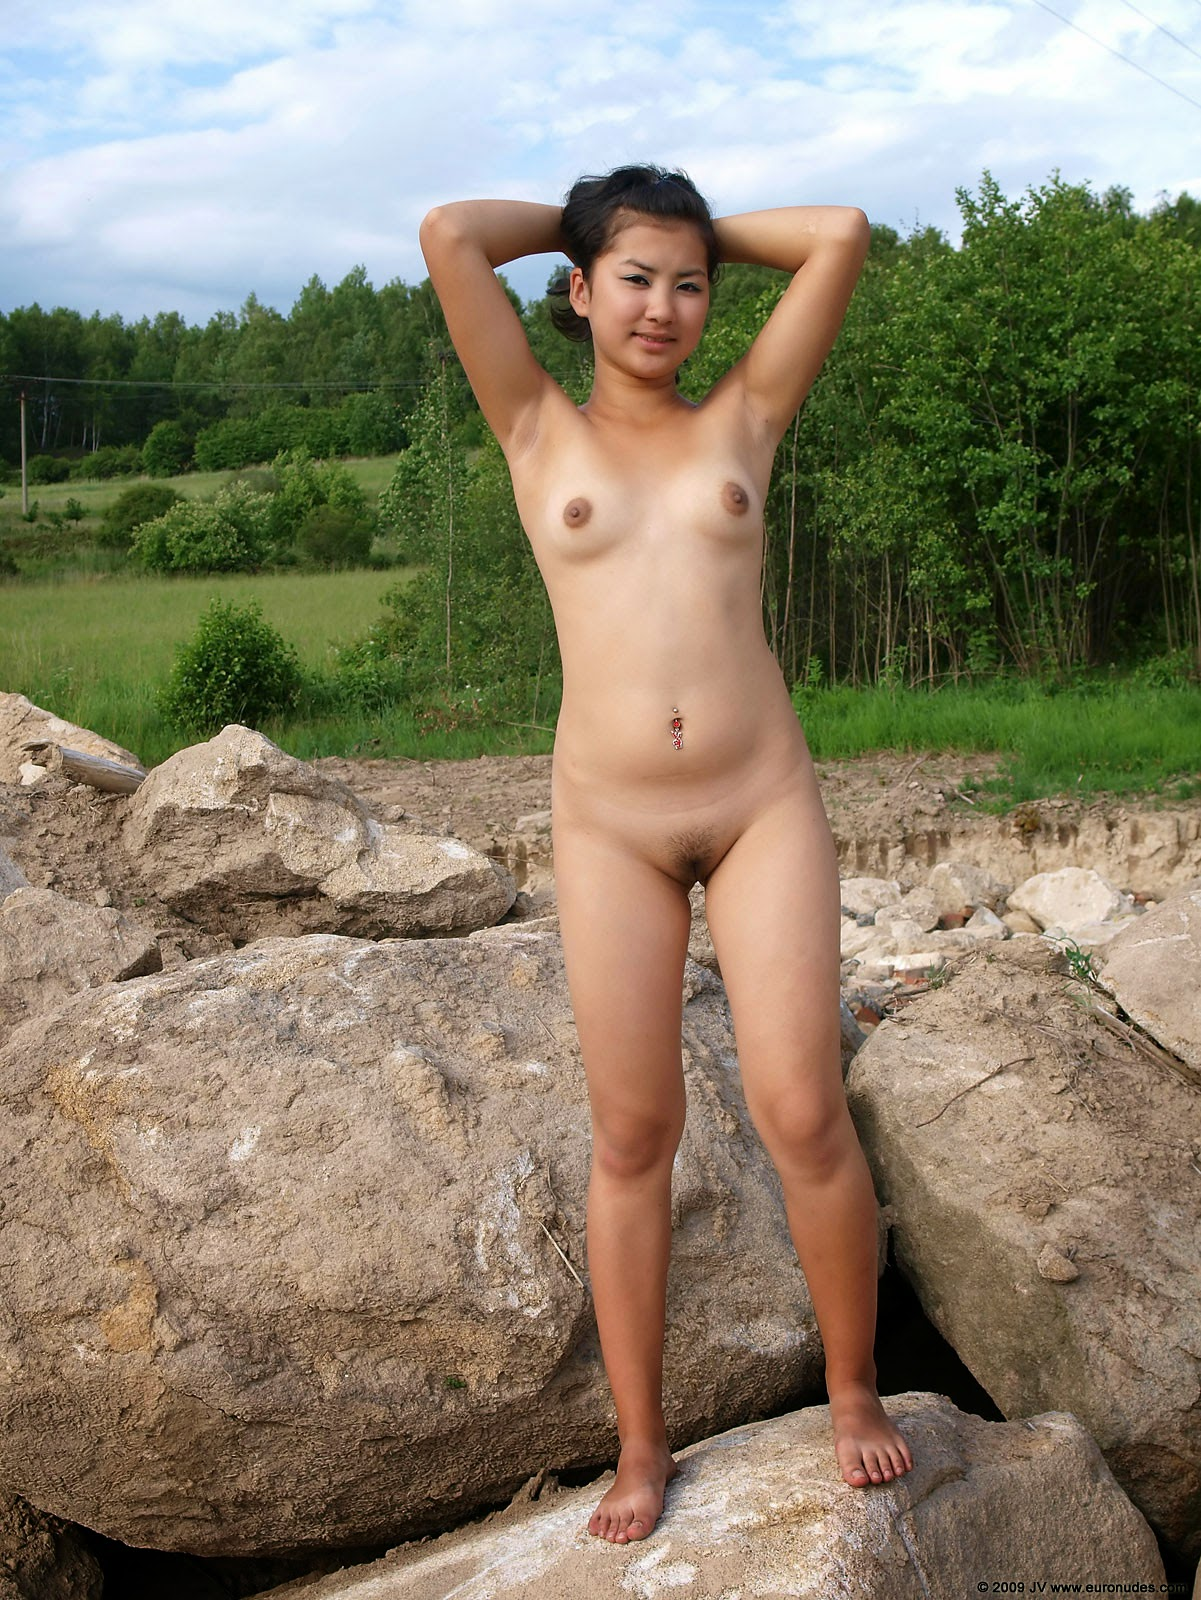 cute shy virgin nude